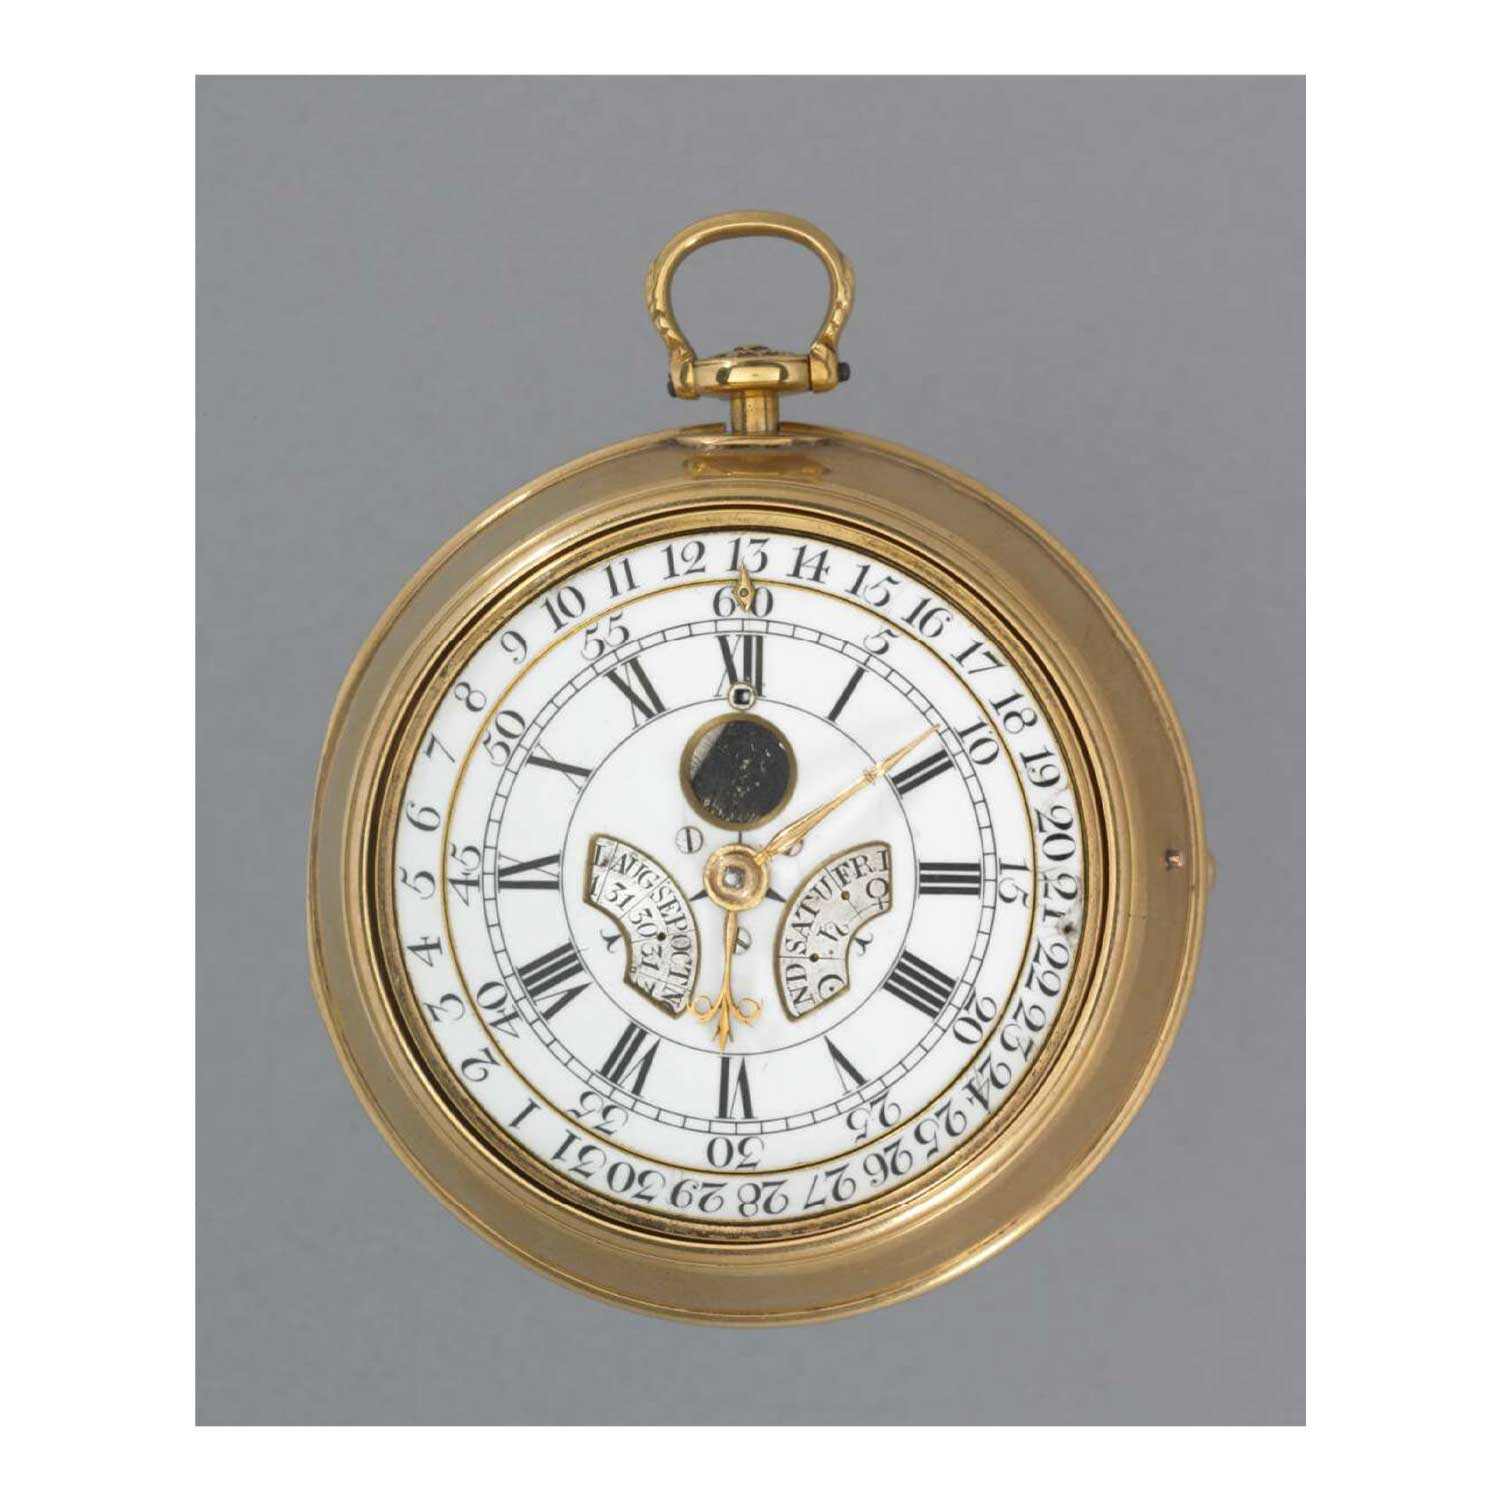 Thomas Mudge's Perpetual Calendar pocket watch No. 574 made in 1764; presently the property of the British Museum (Image: britishmuseum.org)